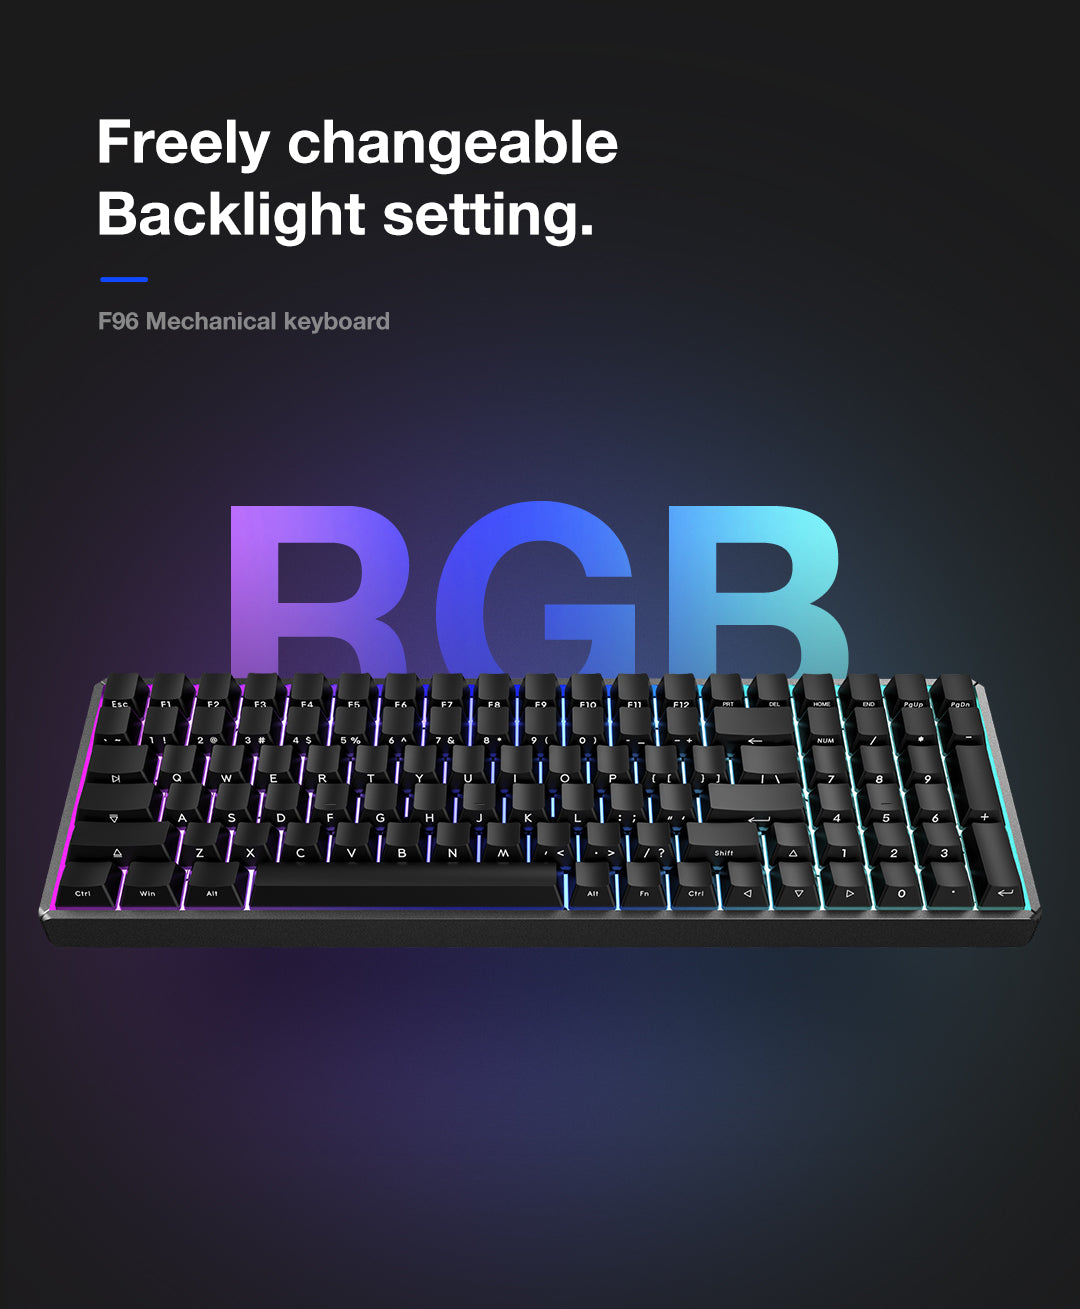 Best 96% Mechanical Keyboard - F96-Knight Wireless Keyboard | IQUNIX